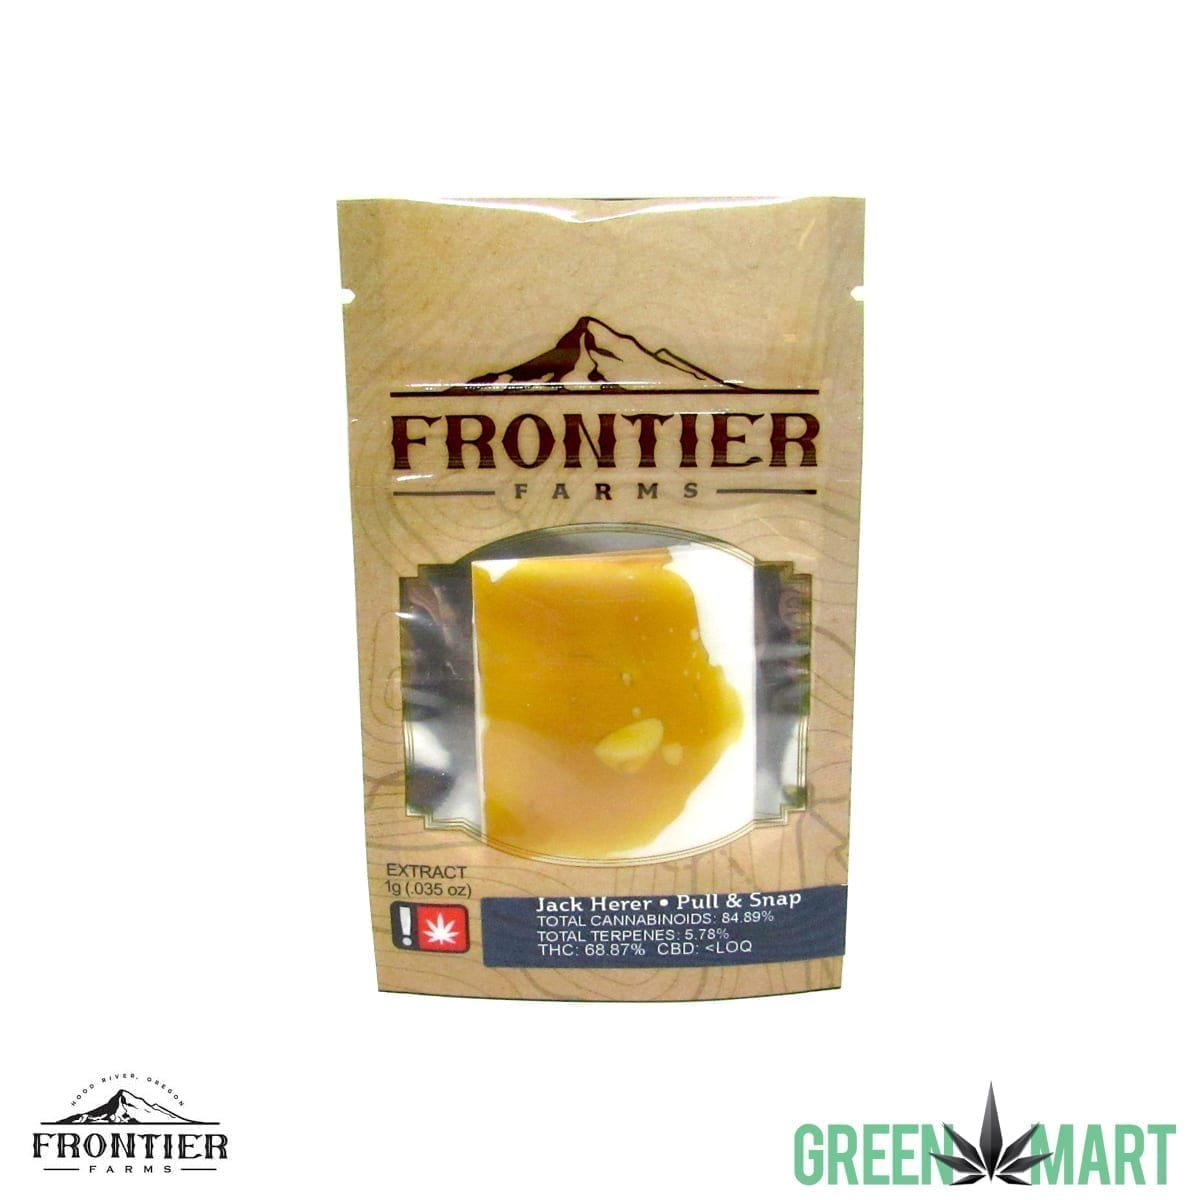 Frontier Farms - Jack Herer